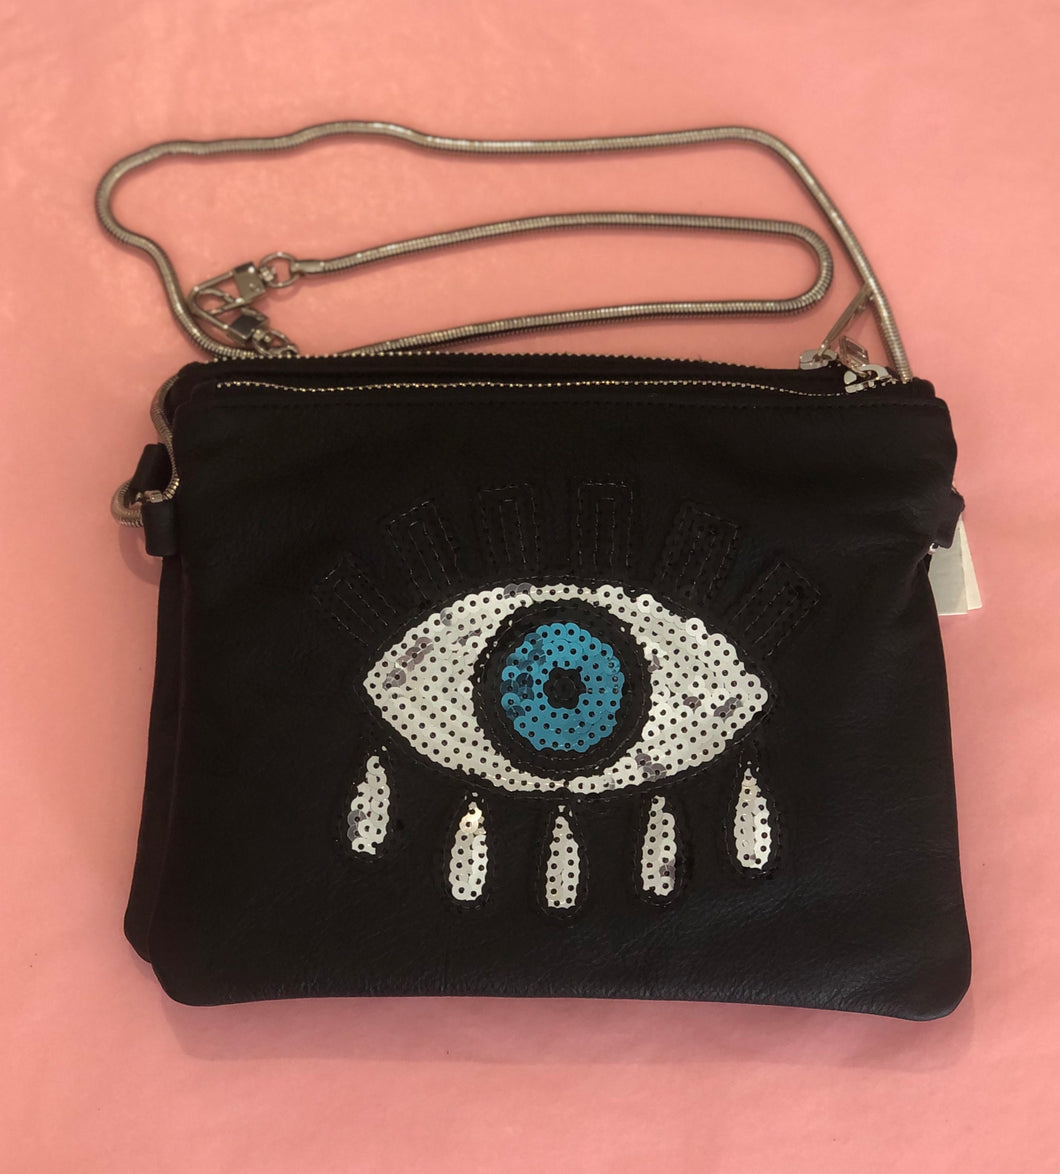 Small Double Take Bag - Black + Eye